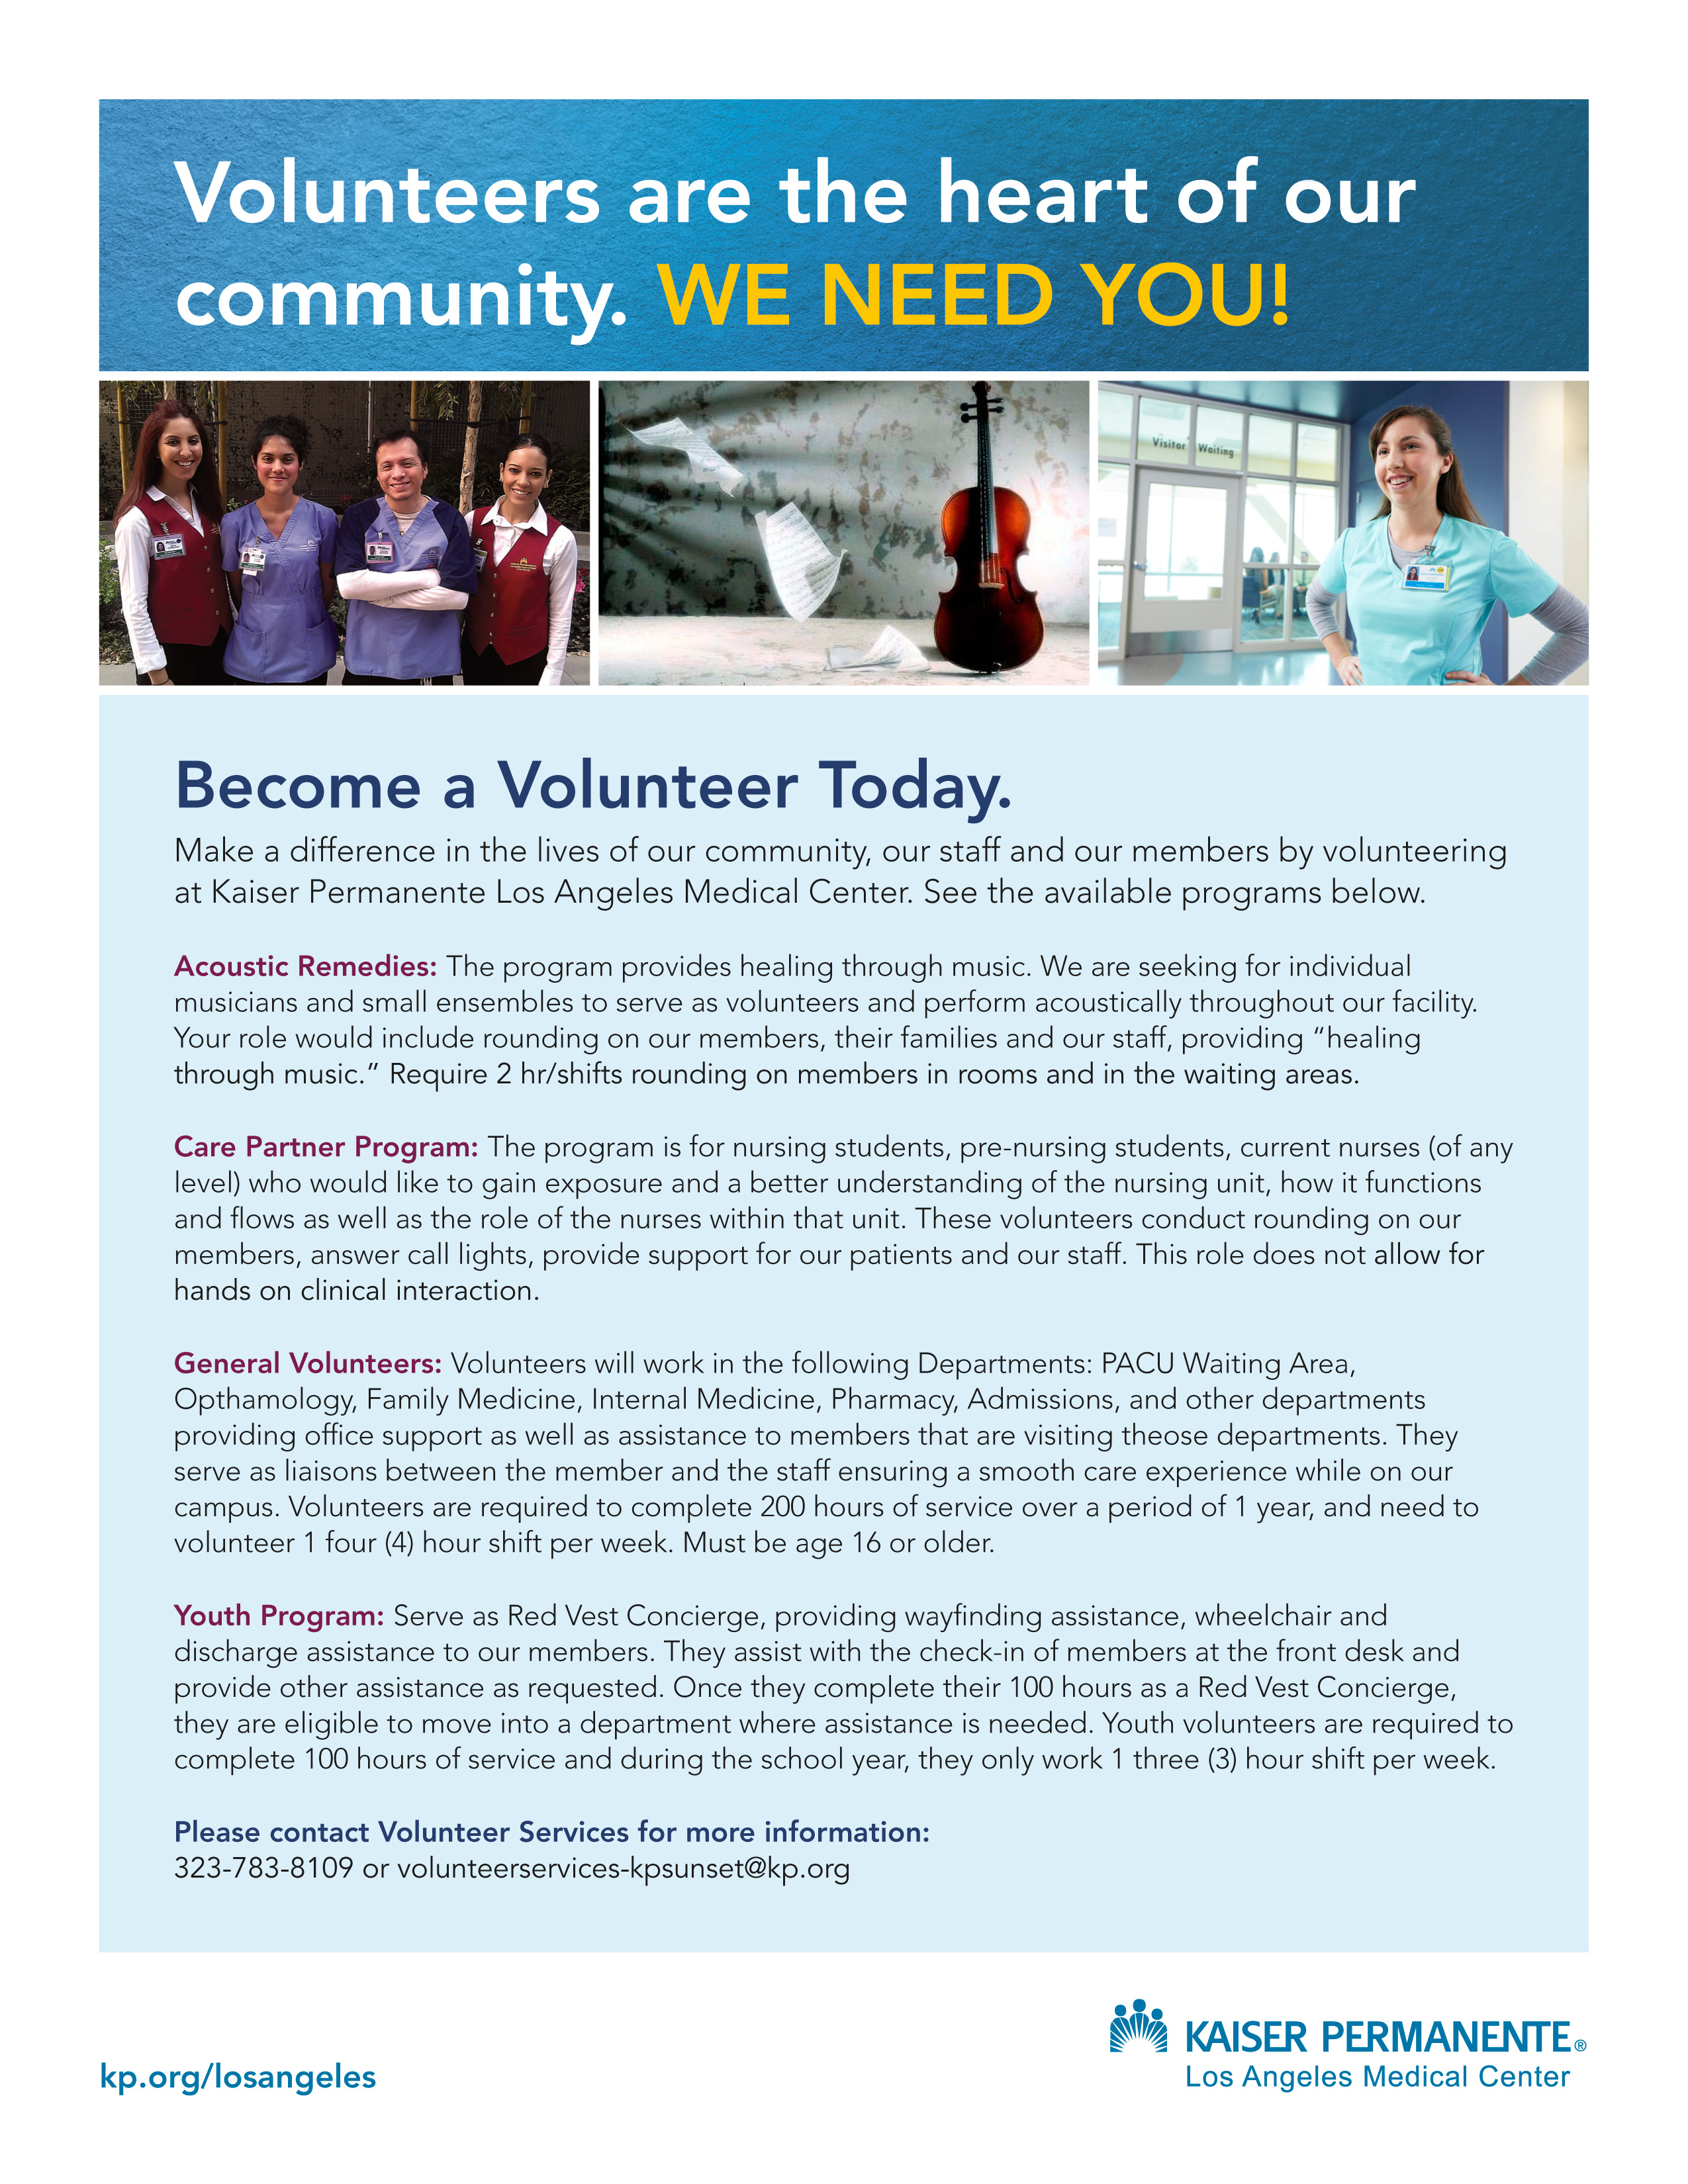 Los angeles health care kaiser permanente volunteers are the heart of our community become a volunteer today falaconquin